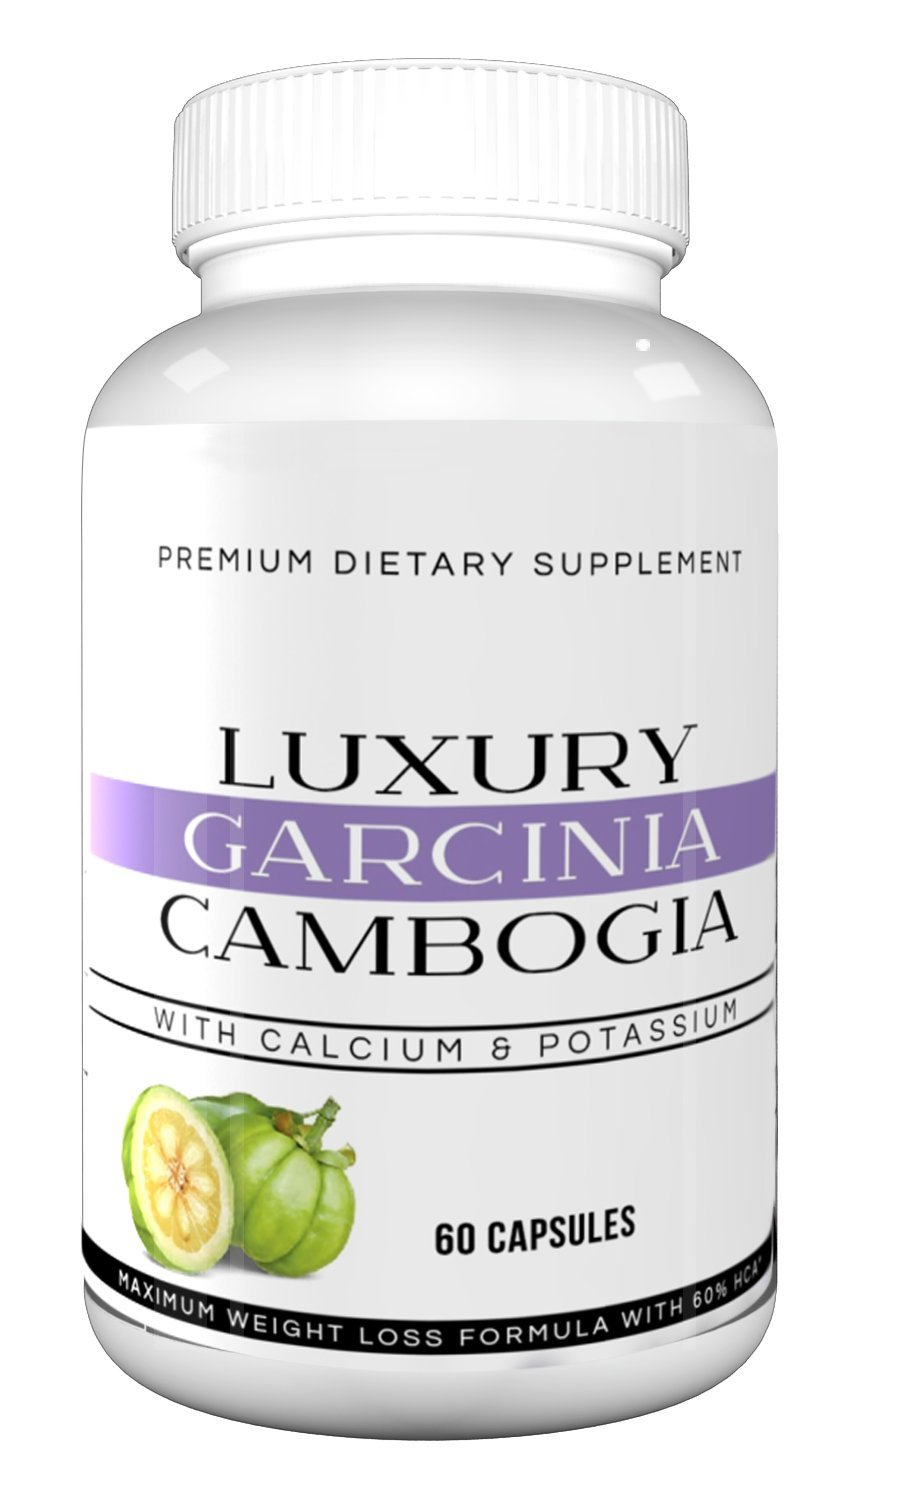 Luxury Garcinia Cambogia - 100% Premium Extra Strength Weight Loss Formula with HCA, All Natural Appetite Suppressant, Fat Blocking and Metabolism Boosting Formula, Non-GMO, Gluten Free, Dairy Free by Ultra Premium Garcinia Cambogia (Image #1)